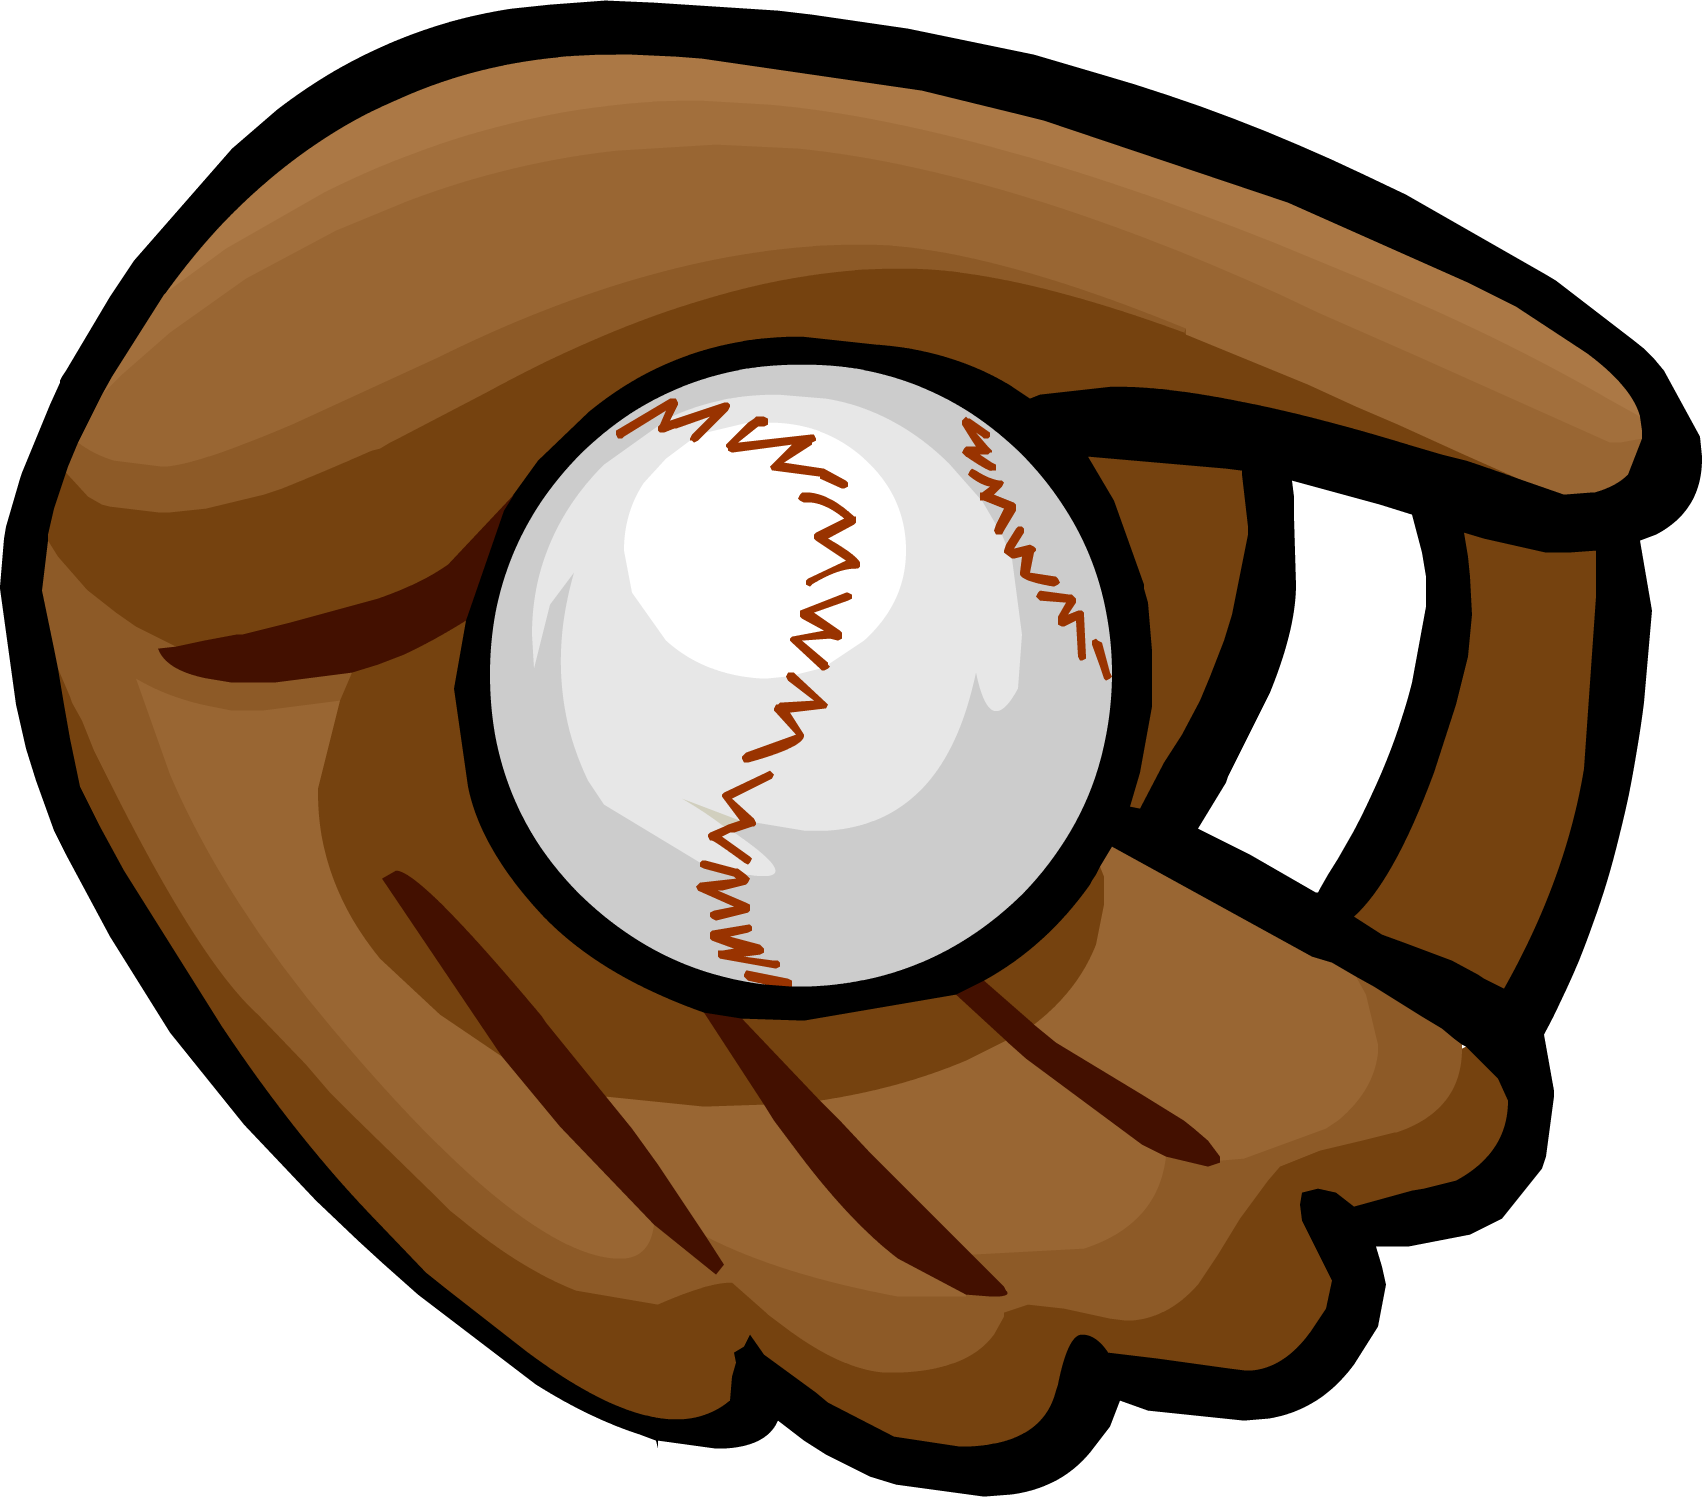 Image glove clothing icon. Baseball stadium advertising clipart